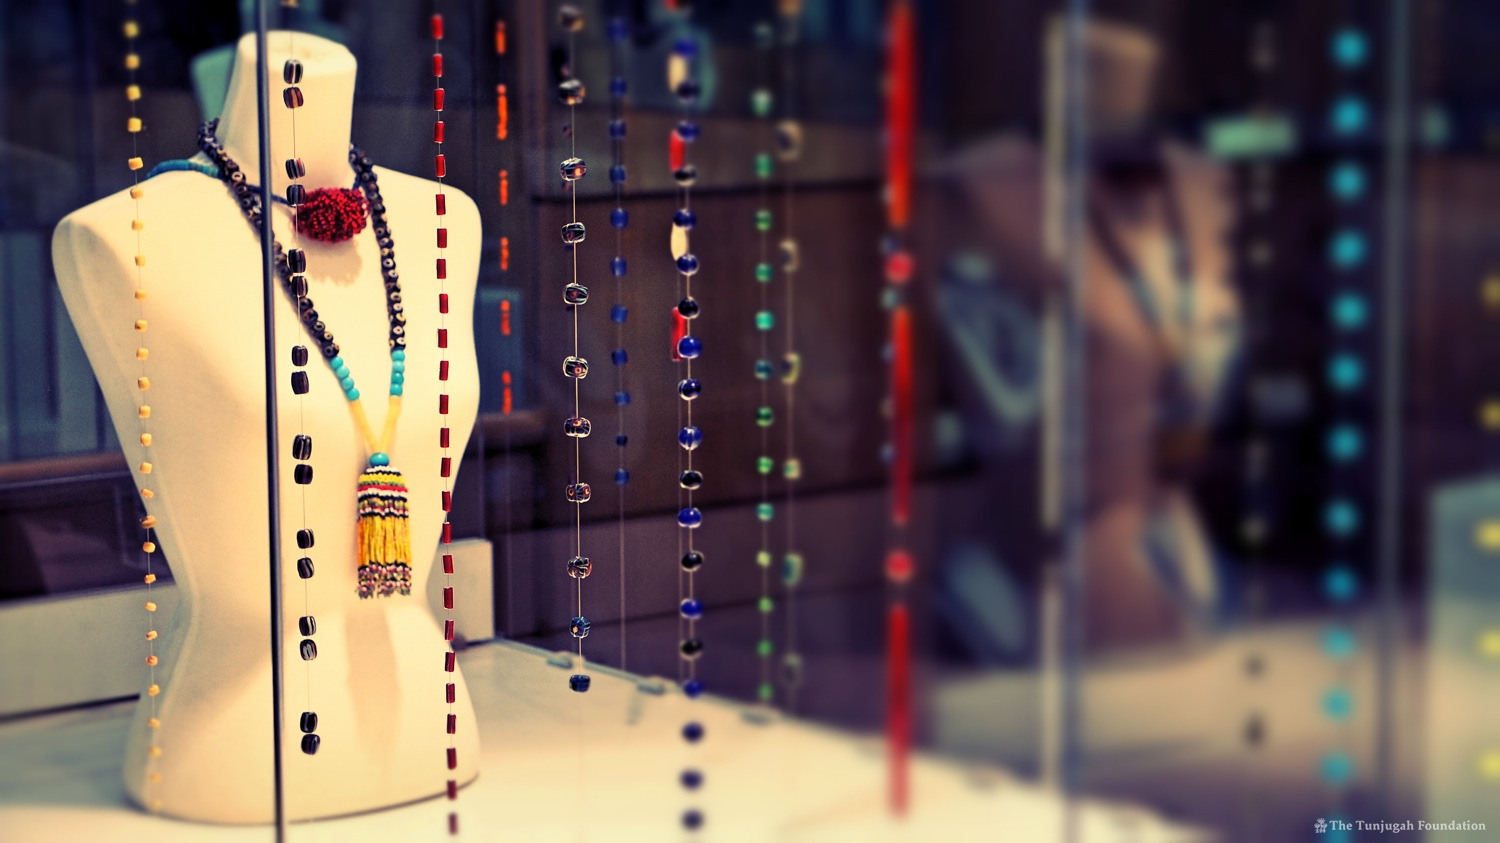 Gallery 5 – Beads Gallery